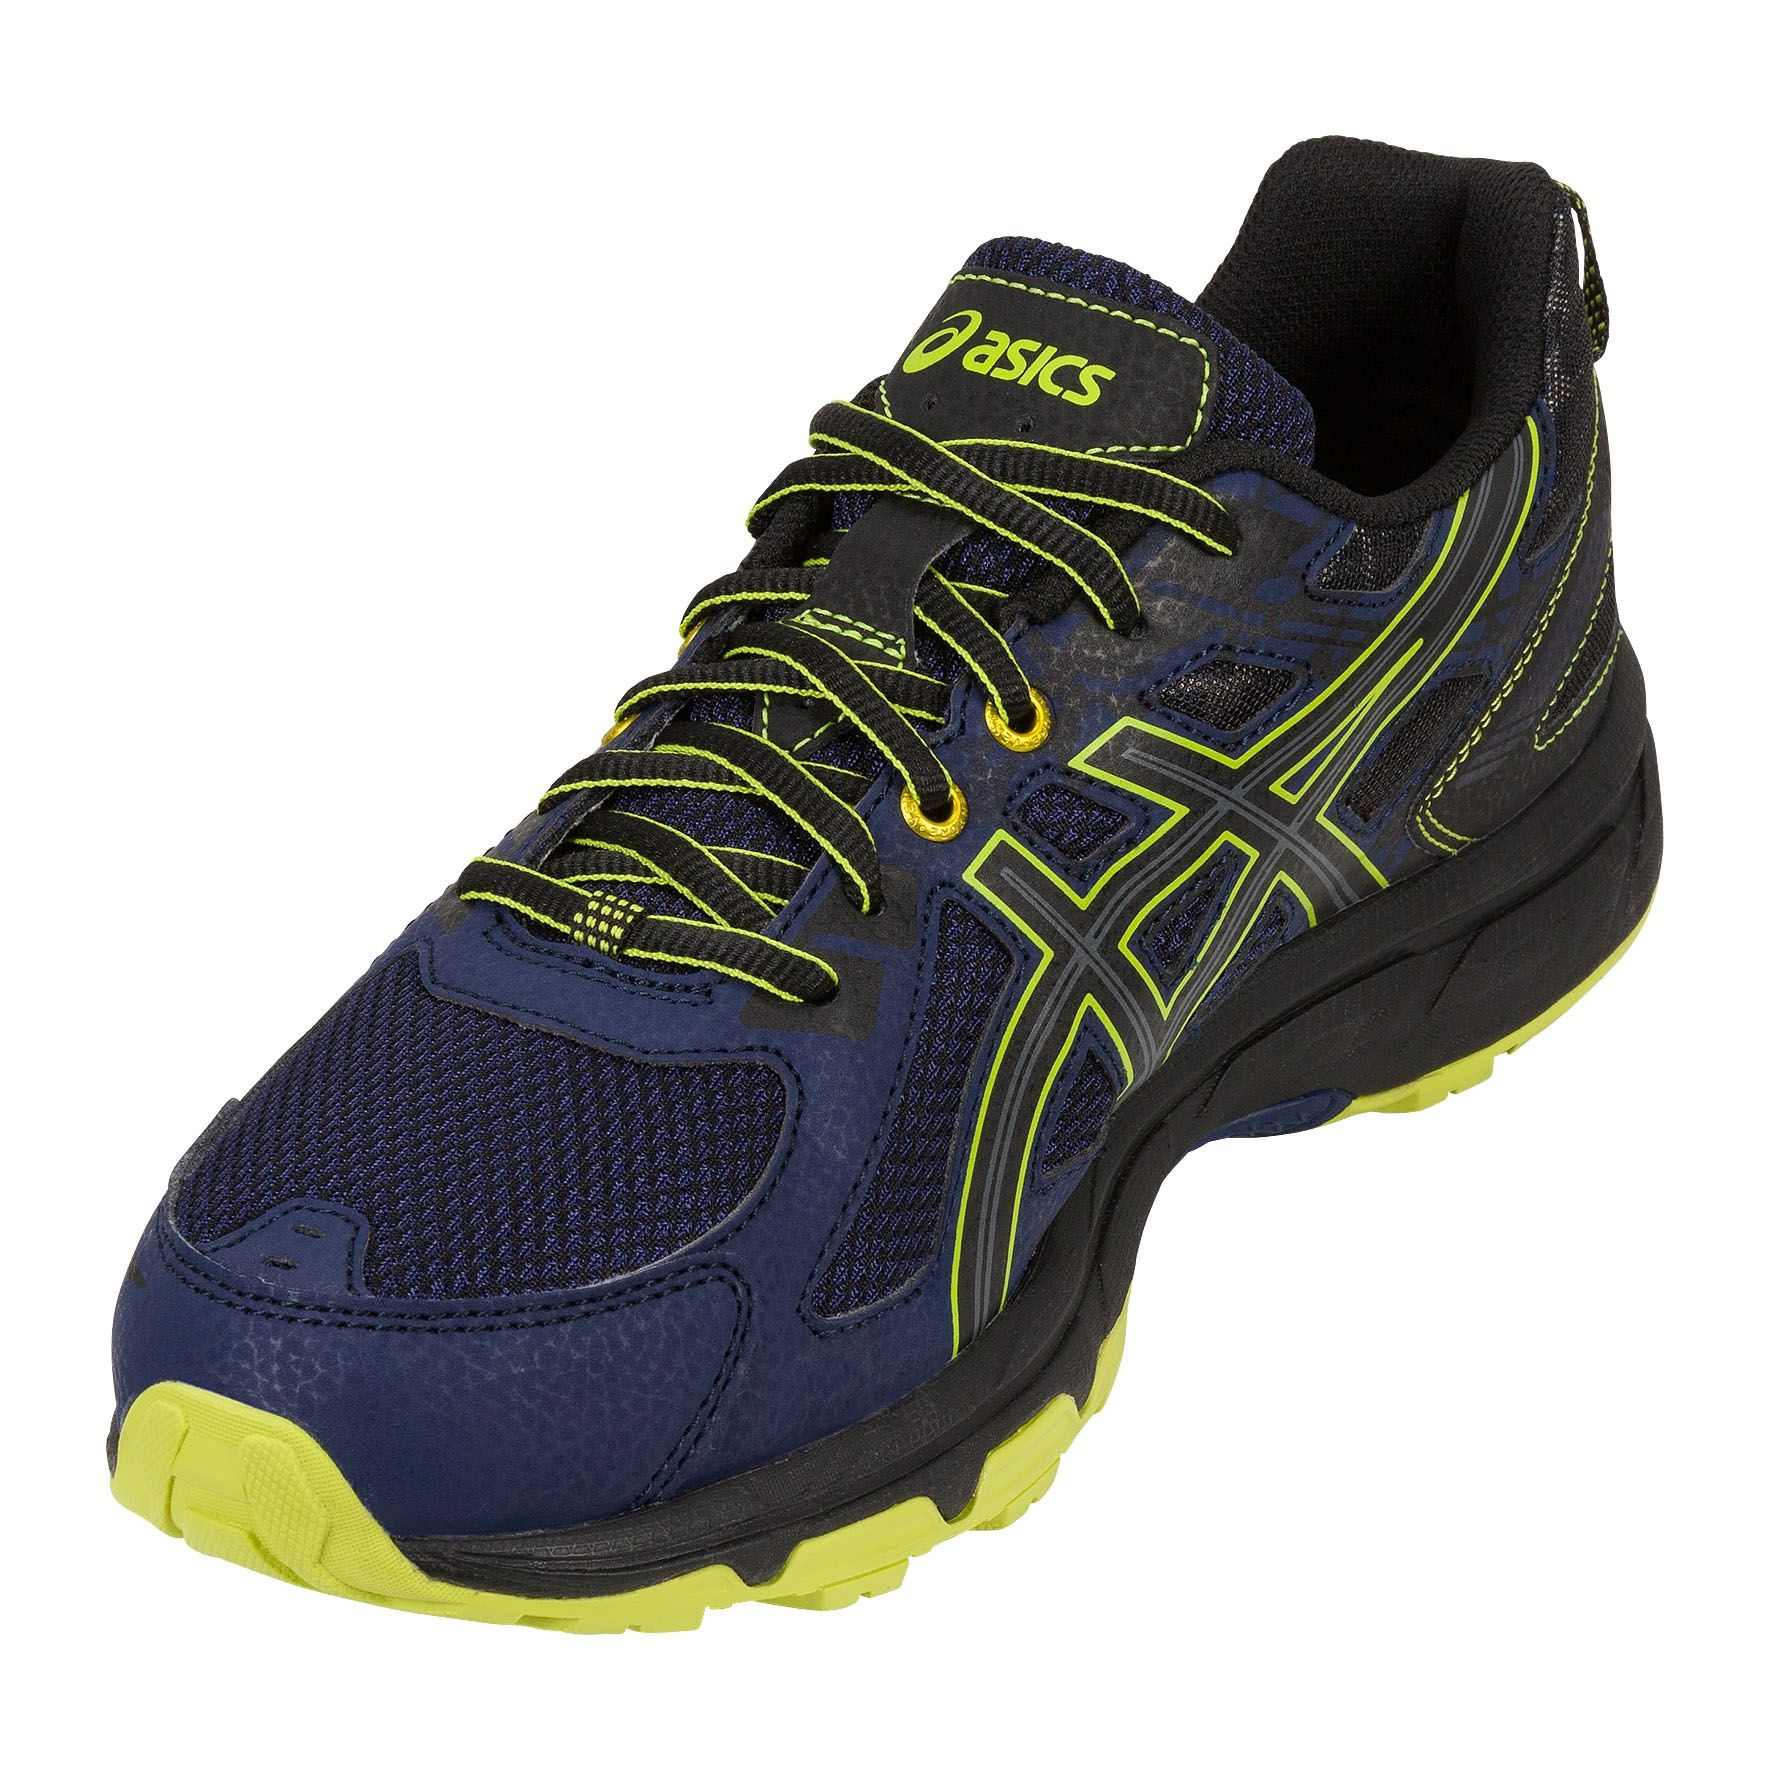 asics venture 6 mens running shoes. Black Bedroom Furniture Sets. Home Design Ideas